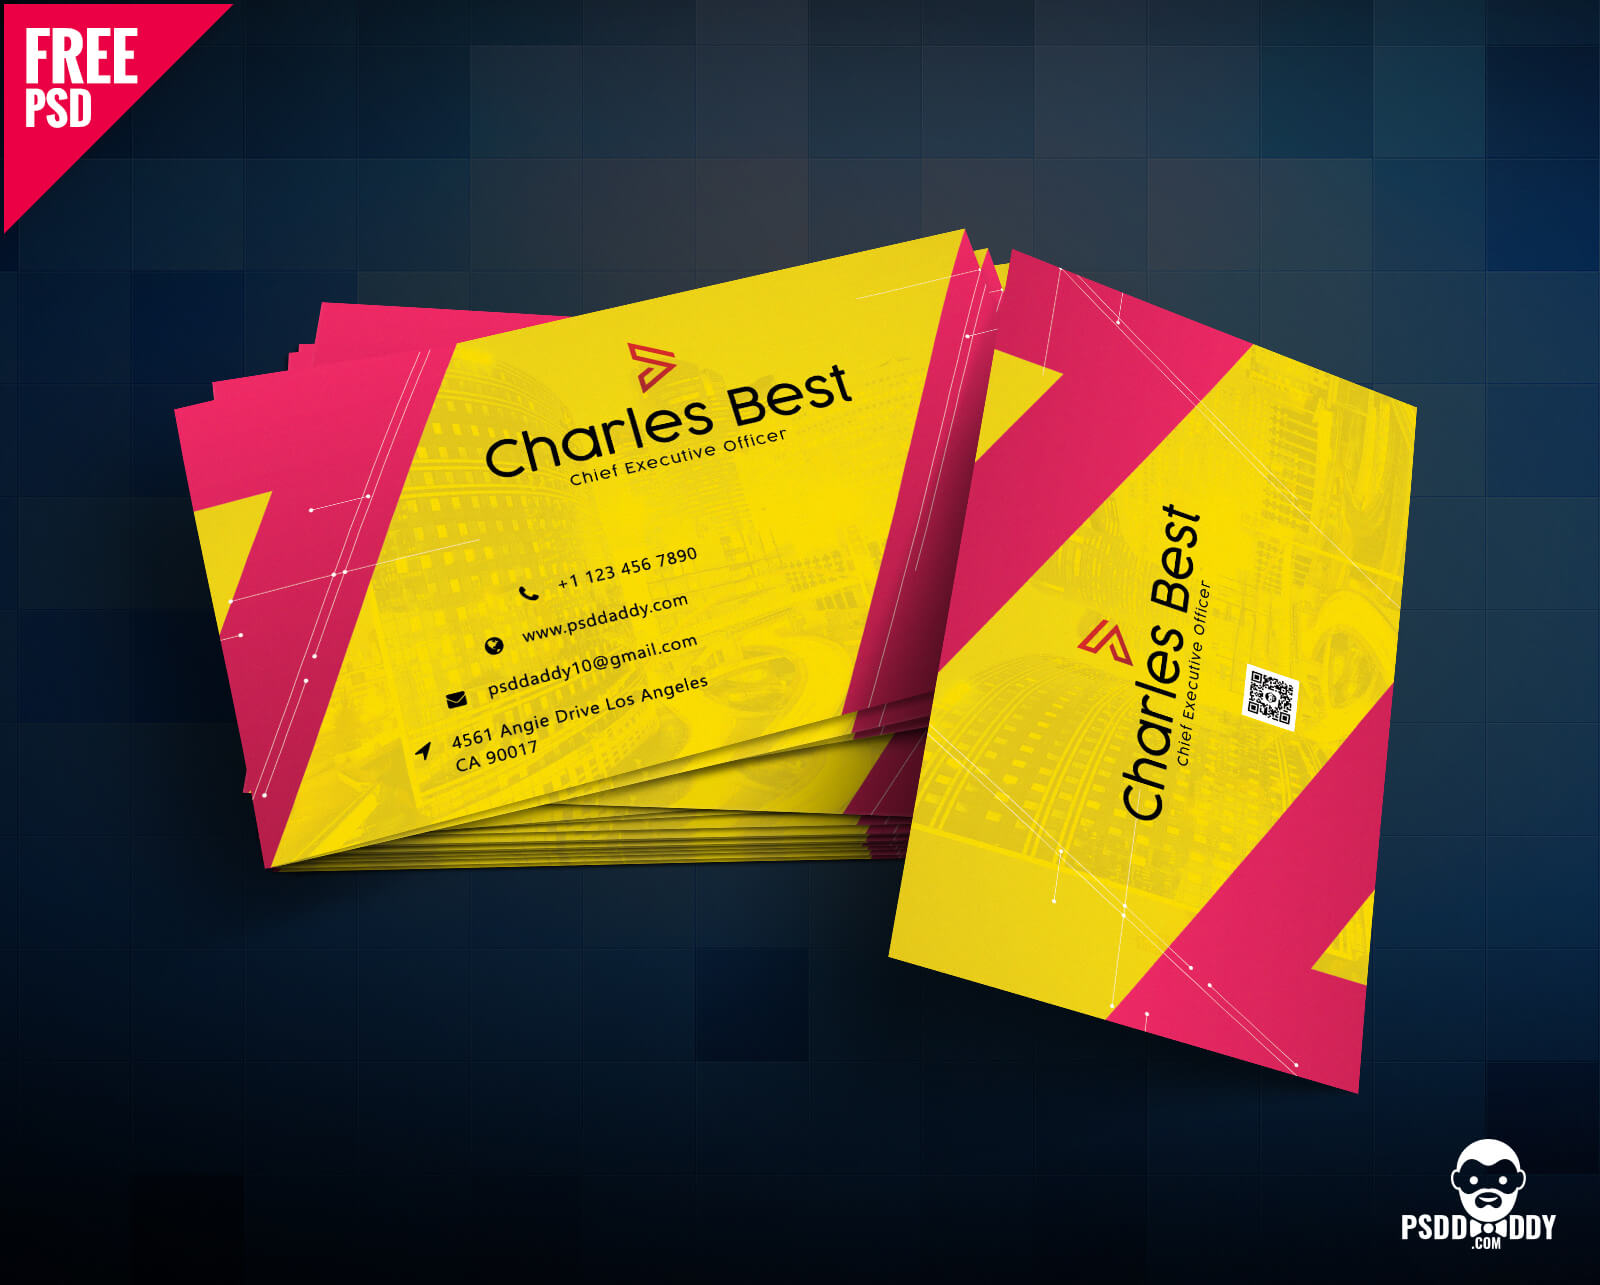 Download] Creative Business Card Free Psd | Psddaddy Pertaining To Business Card Size Psd Template